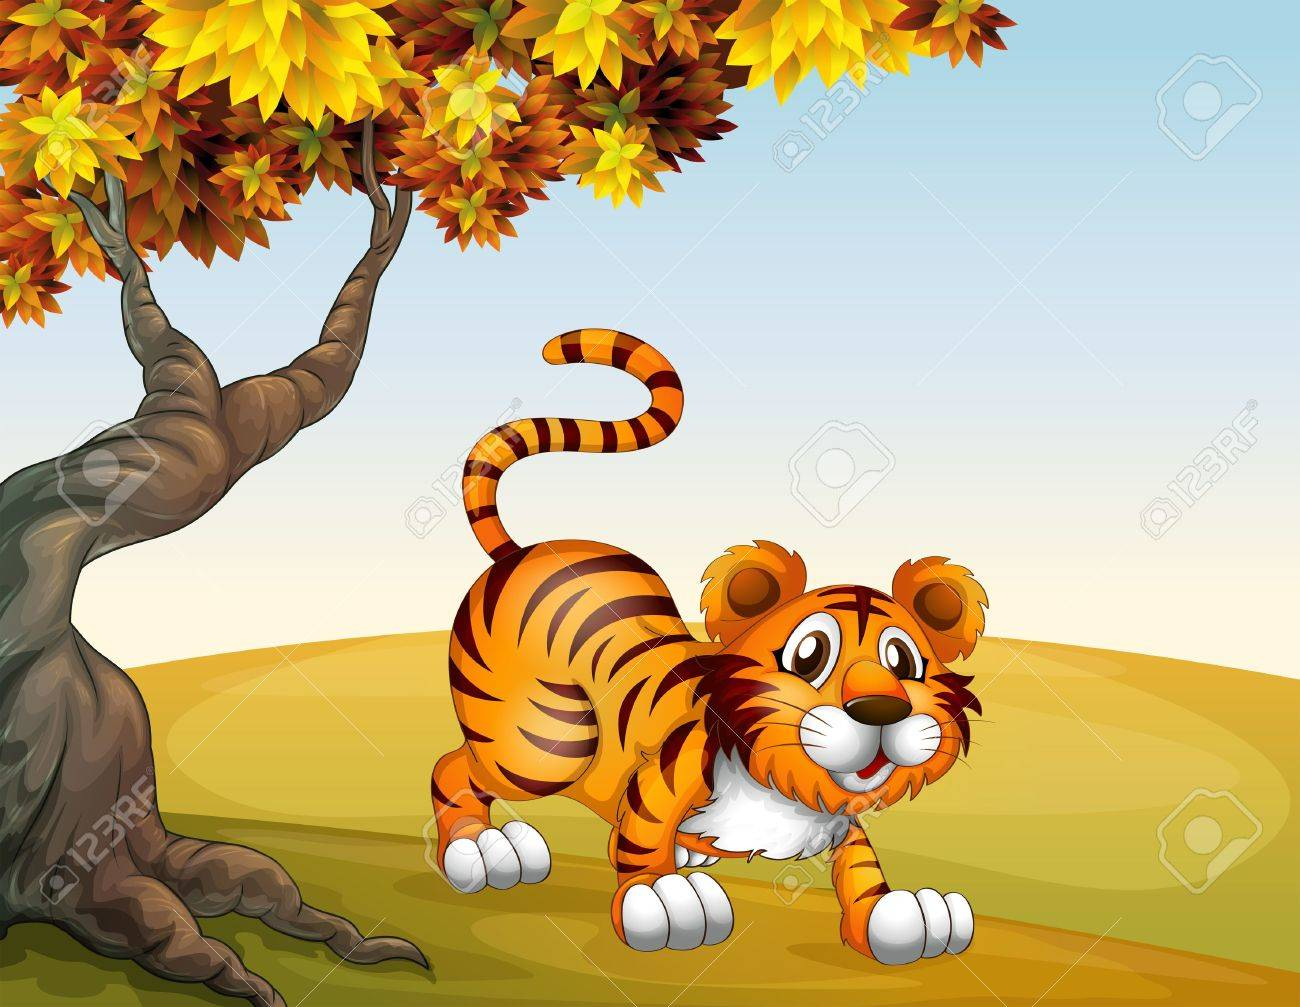 Illustration of a tiger in a jumping position near the big tree Stock Vector - 18266232